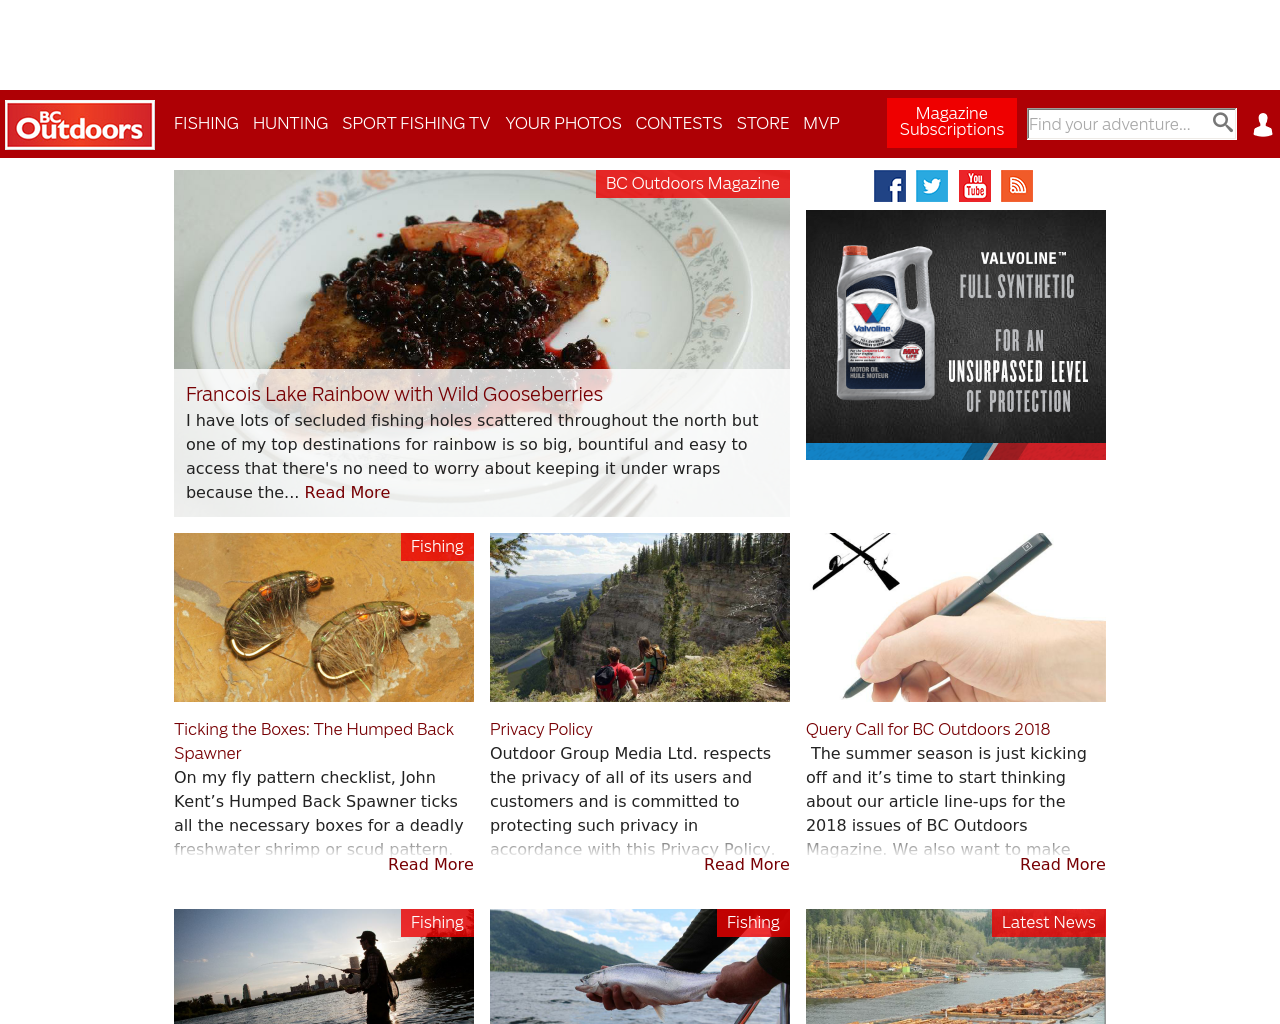 BC-Outdoors-Magazine-Advertising-Reviews-Pricing